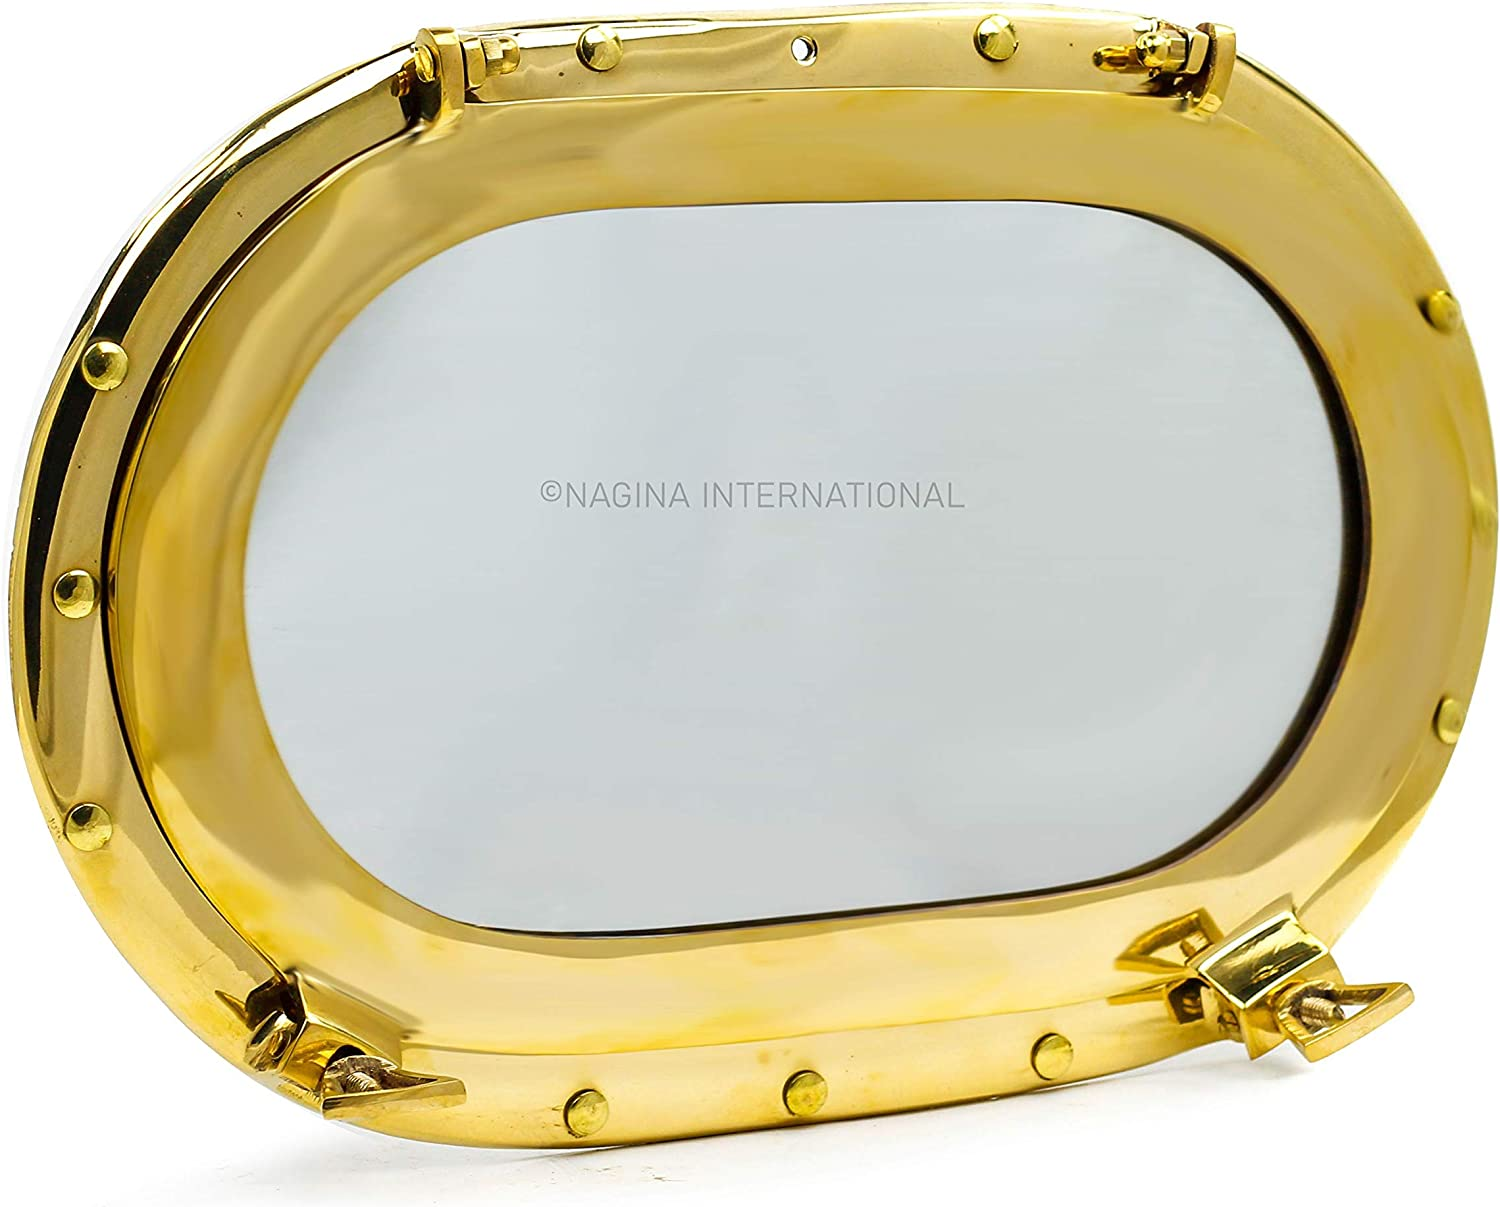 Nagina International Brass Heavy Solid Premium Polished Oval Porthole Mirror | Pirate's Exclusive Ship's Decor Gifts & Collectibles (Brass, 14 Inches)